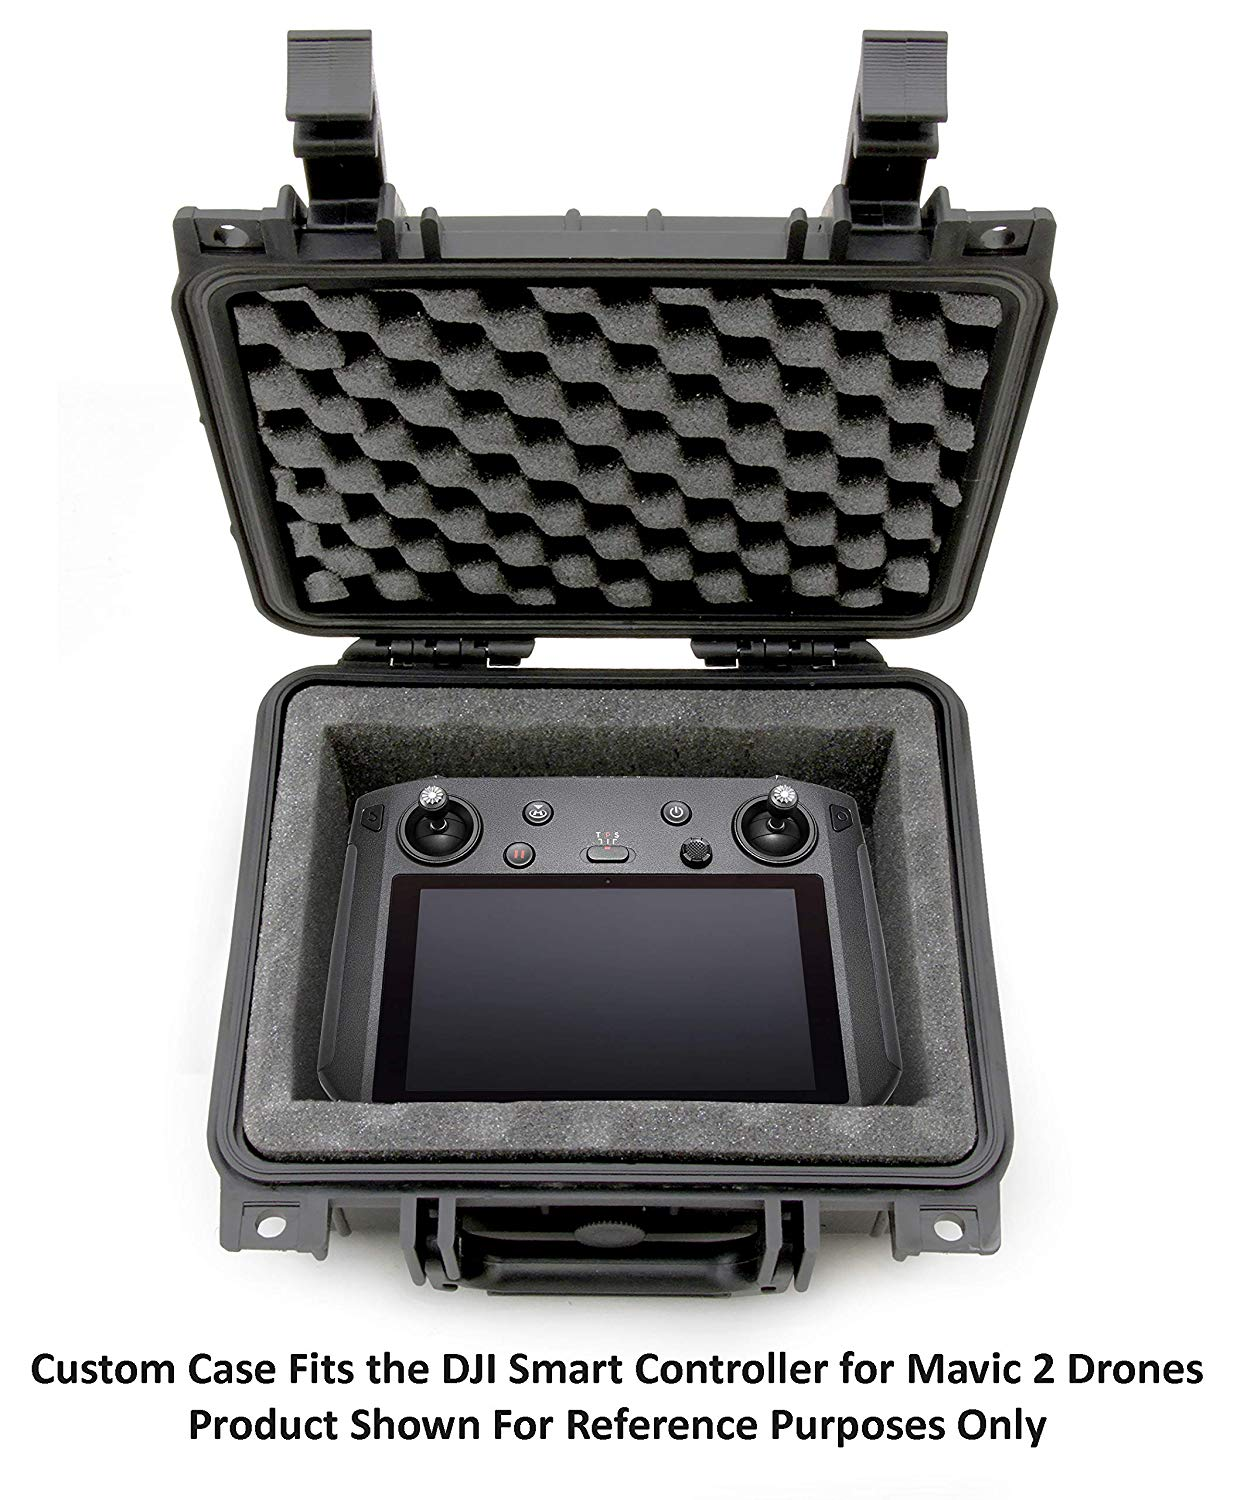 CASEMATIX Waterproof Carry Case Compatible with DJI Smart Controller for Mavic 2 - Rugged Drone Controller Case81uoNx0QwyL._SL1500_